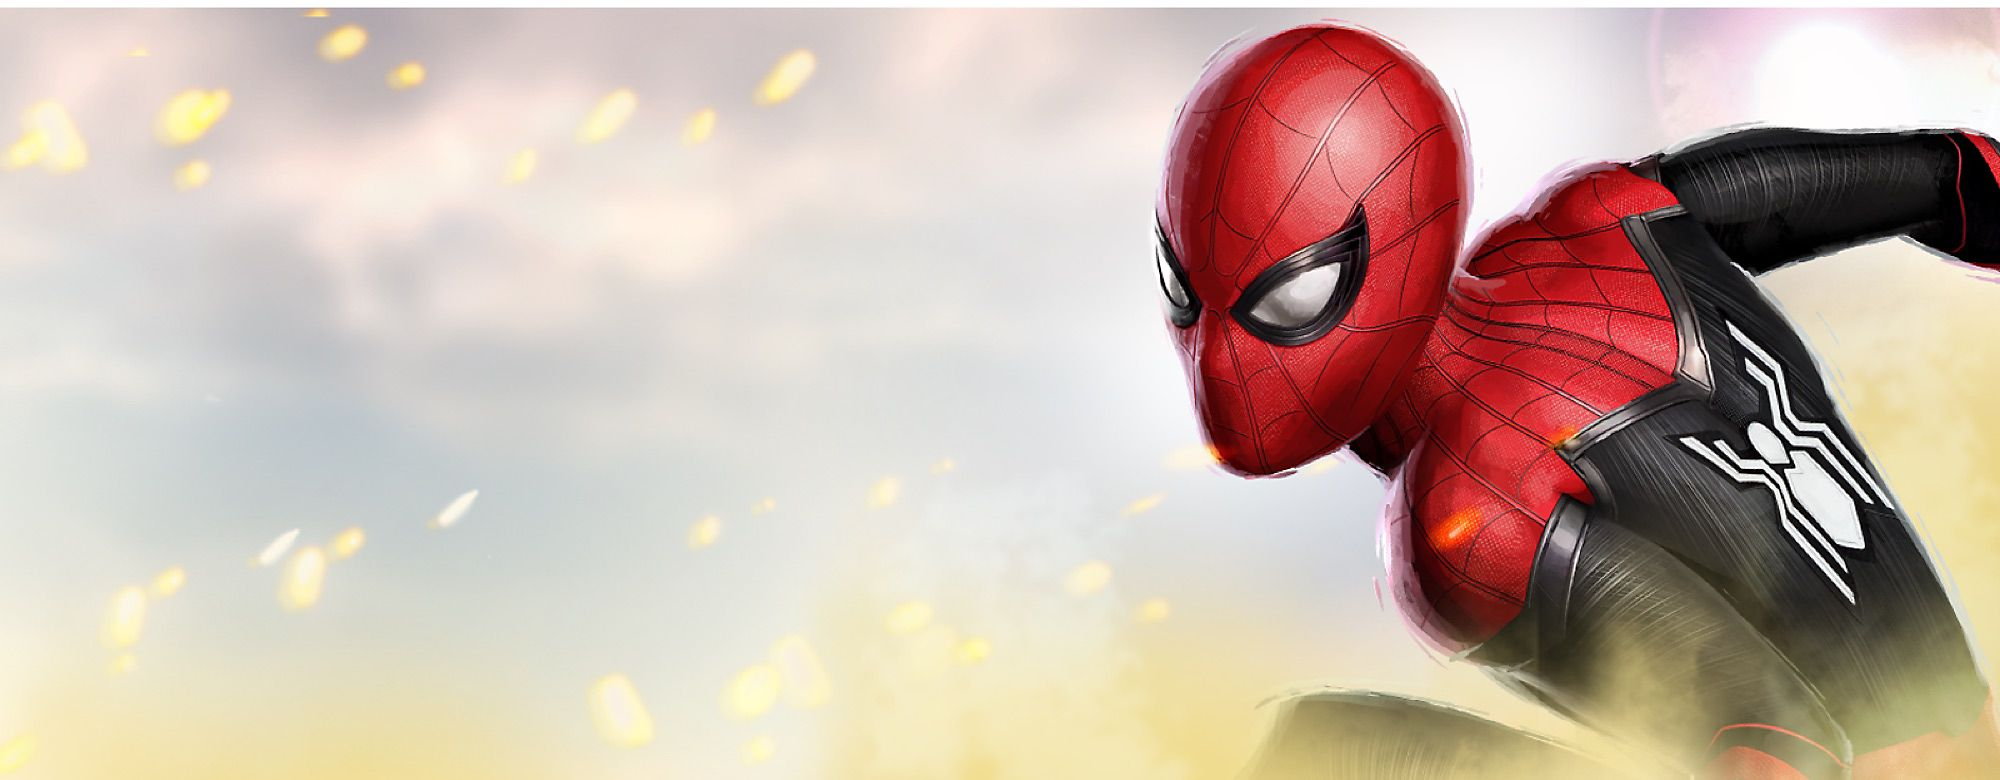 Spider-Man: Far From Home Peter Parker and his friends go on summer holiday to Europe, where Peter finds himself trying to save his friends against a villain known as Mysterio. Join the adventure with our action-packed collection of toys, costume, clothing and more. Releases July 2019